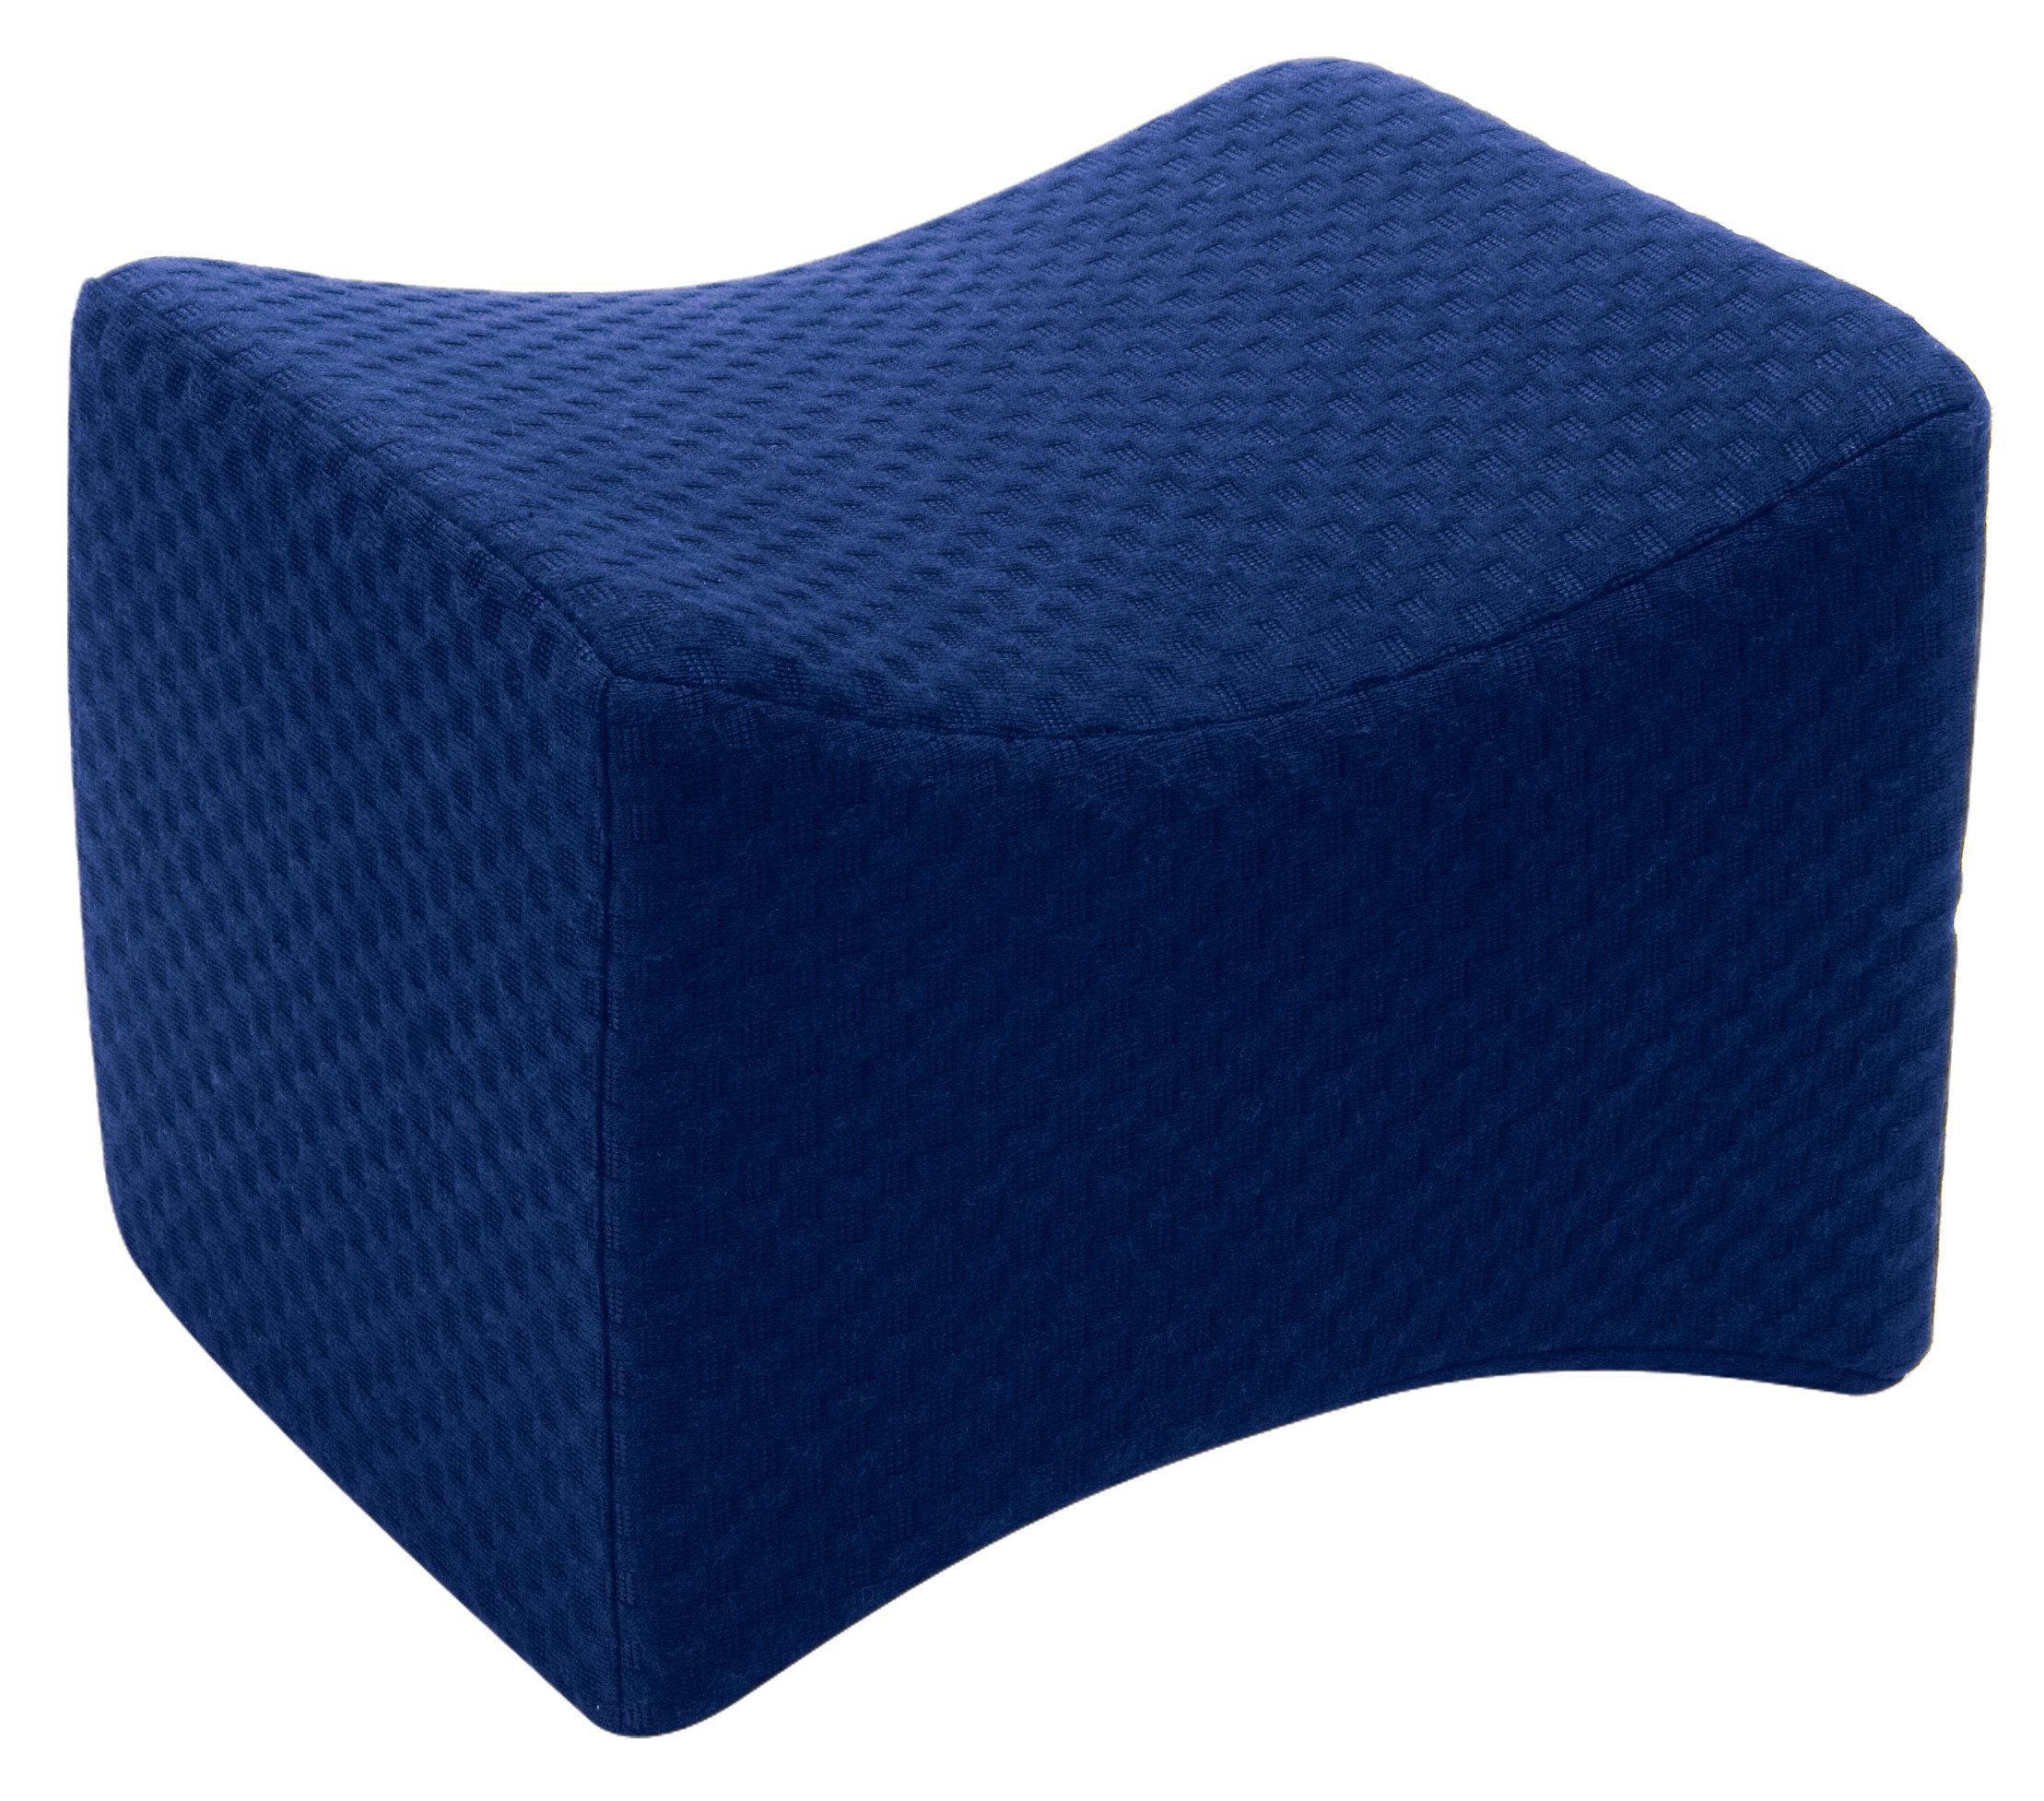 Carex Knee Pillow, Ergonomic Memory Foam Pillow for Reducing Lower Back and Leg Discomfort for Better Sleep